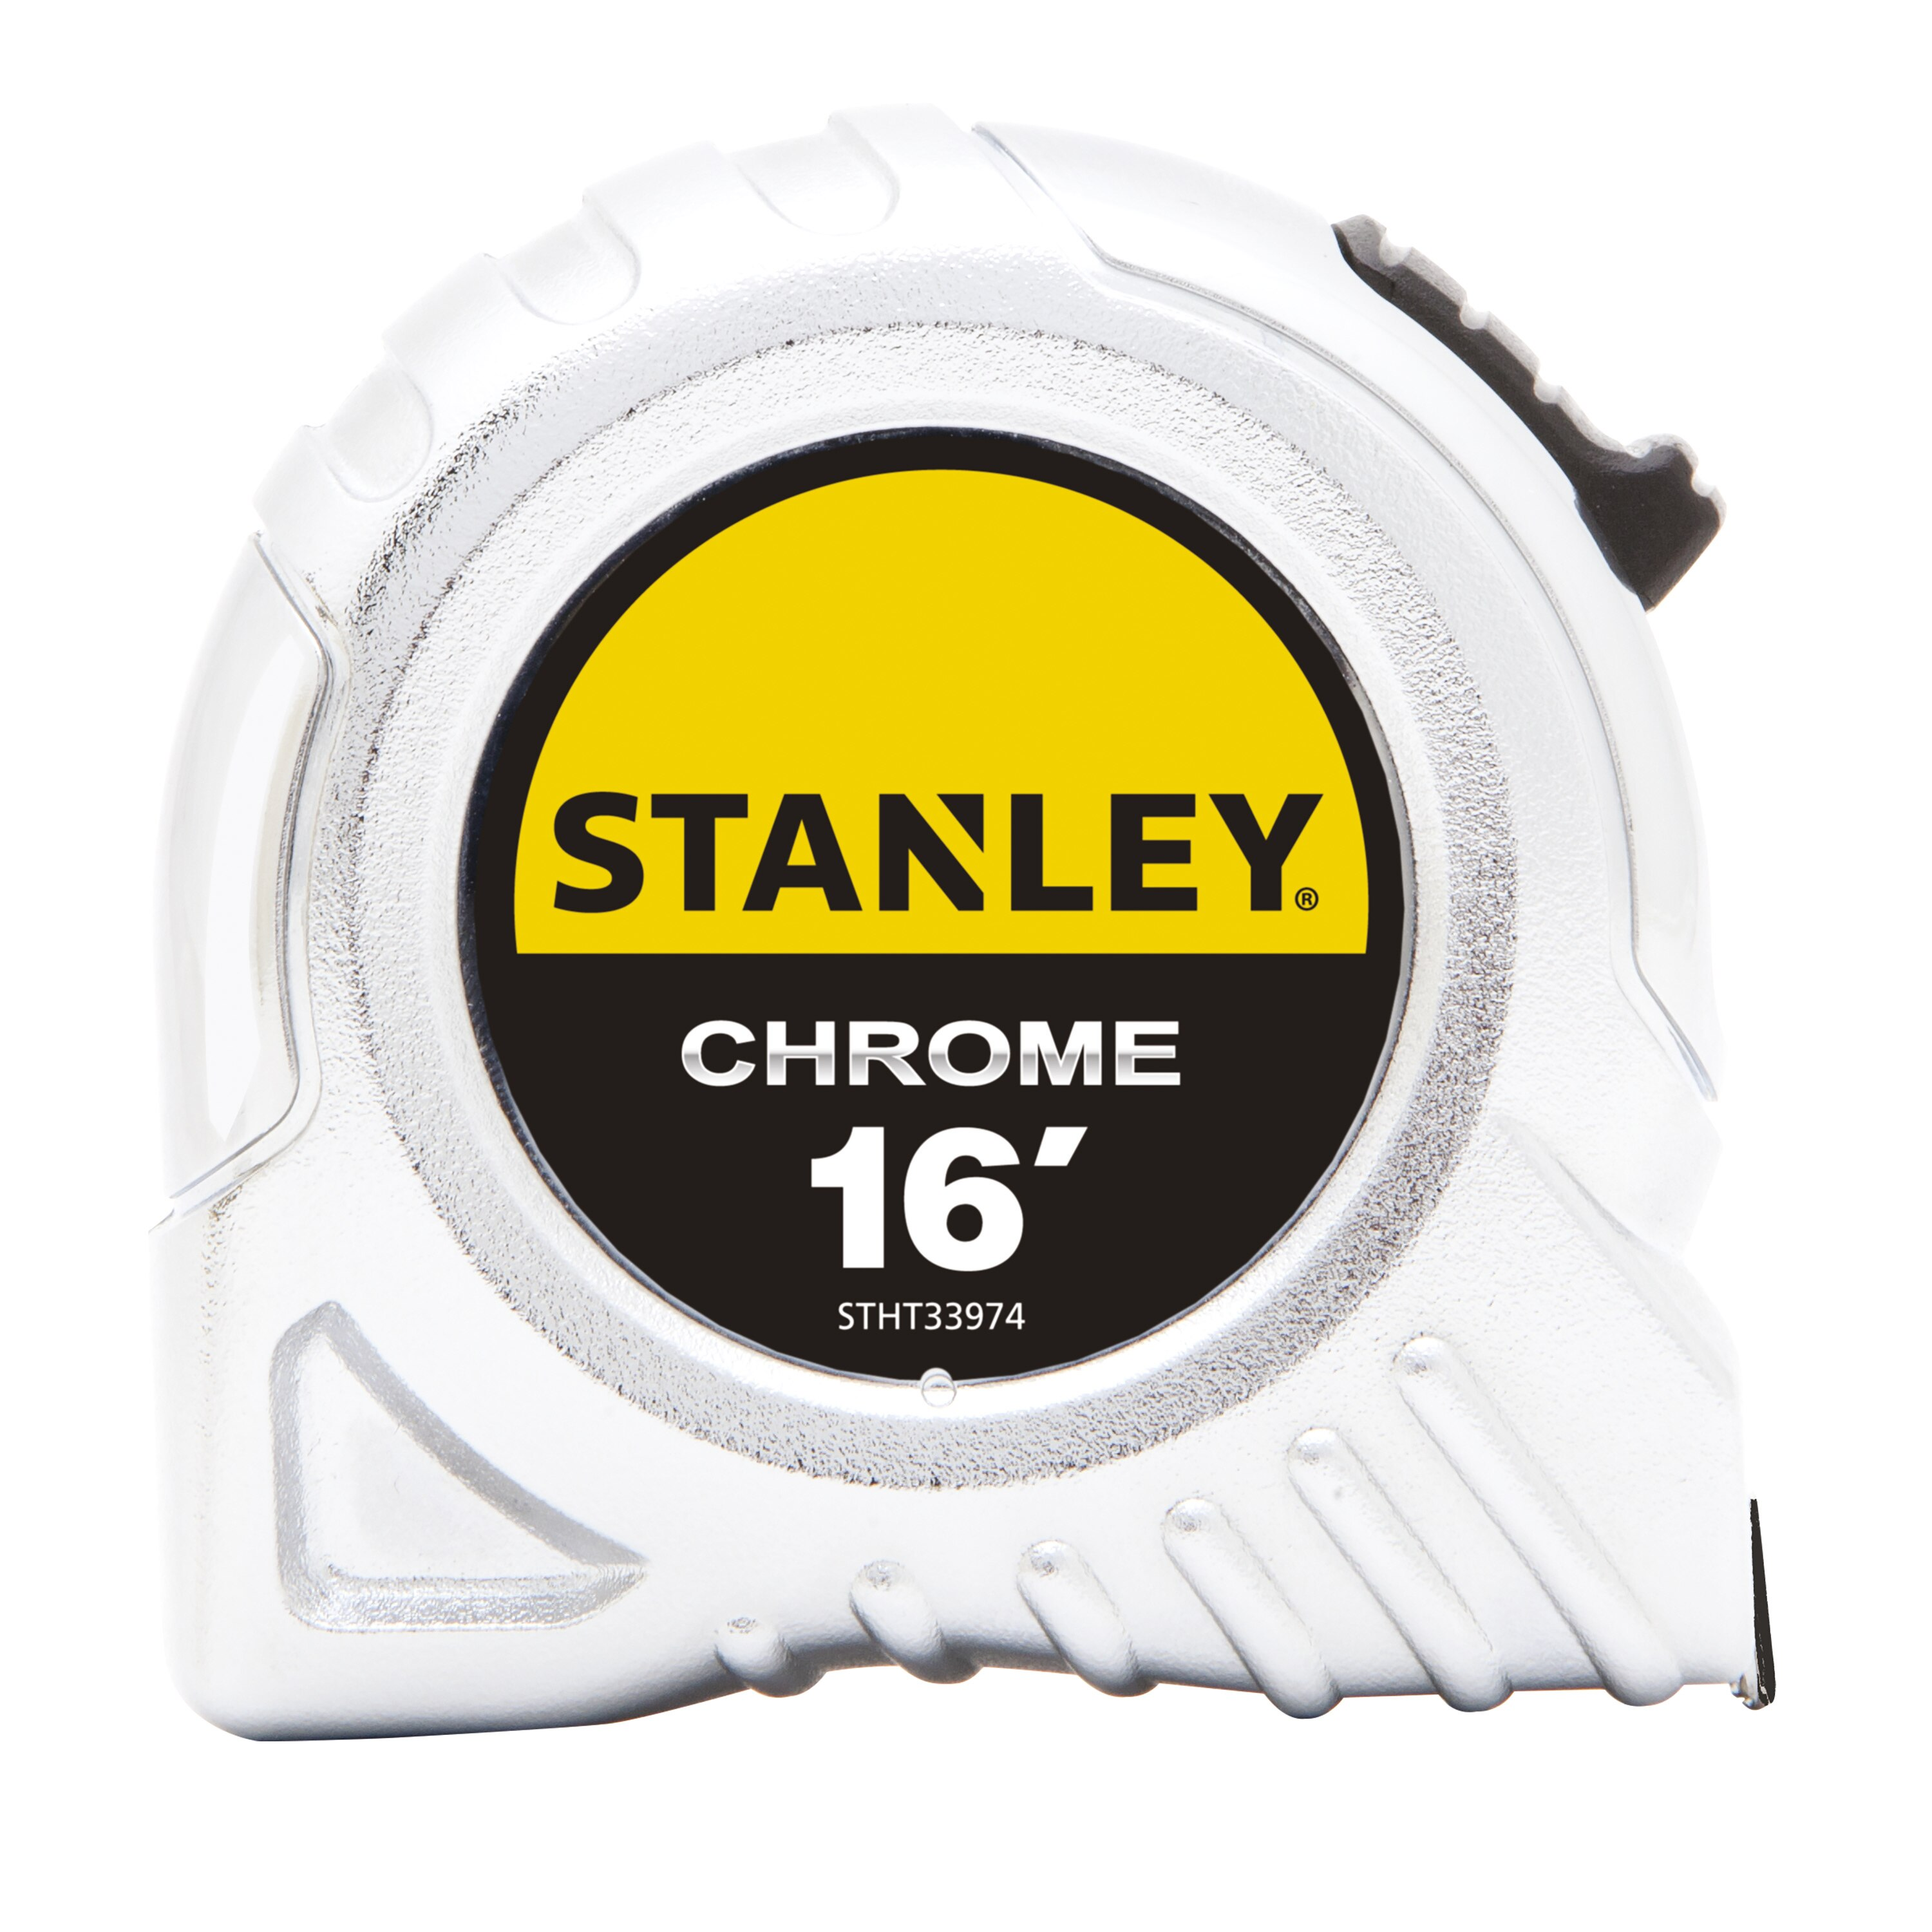 Stanley Tools - 16 ft Chrome Tape Measure - STHT33974